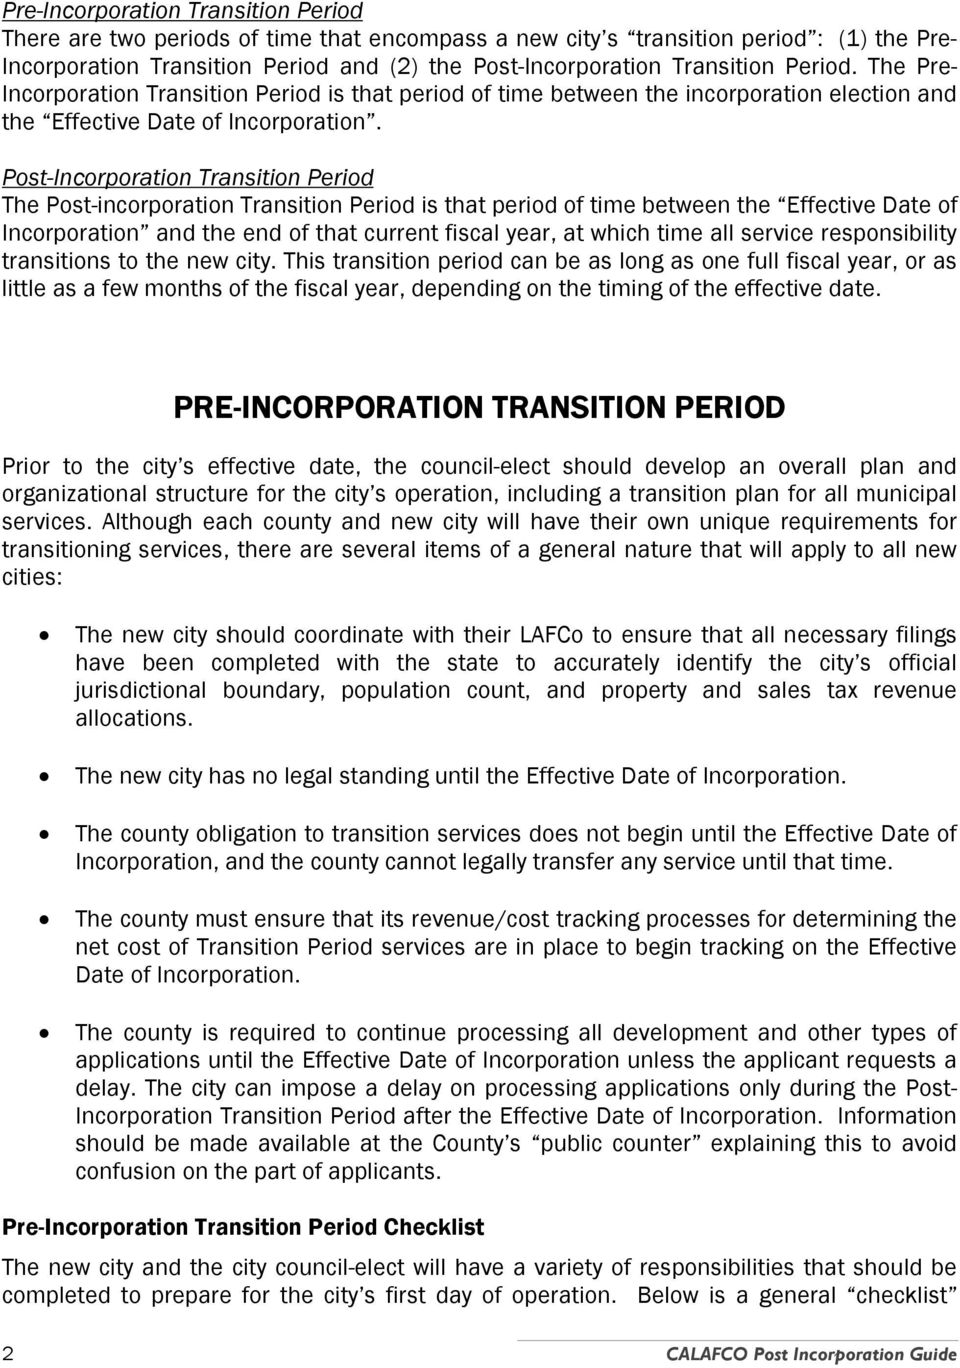 Post-Incorporation Transition Period The Post-incorporation Transition Period is that period of time between the Effective Date of Incorporation and the end of that current fiscal year, at which time